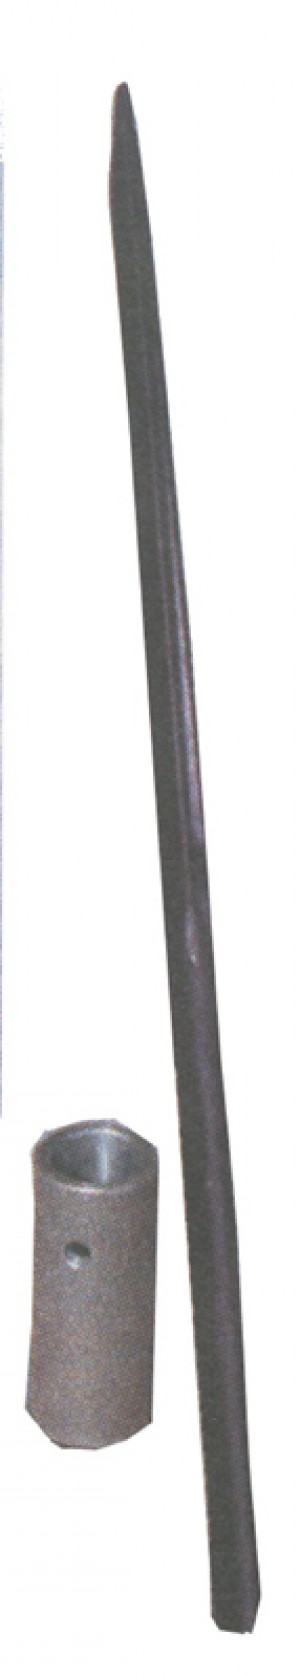 """Weld Sleeve For 39"""" or 43"""" Bale Spear"""